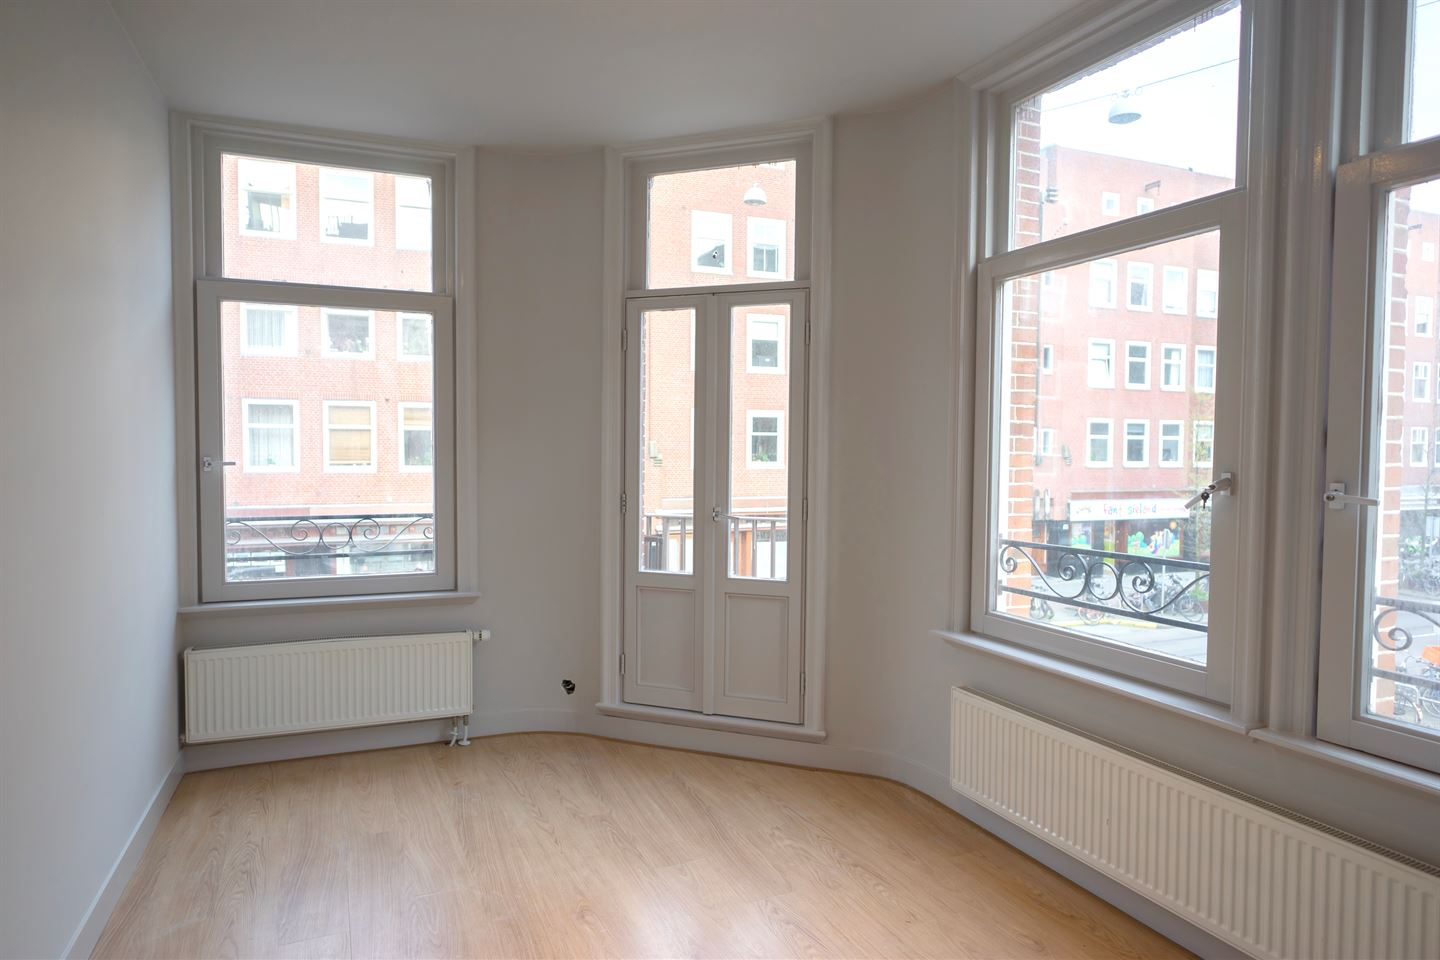 View photo 1 of Witte de Withstraat 125 2